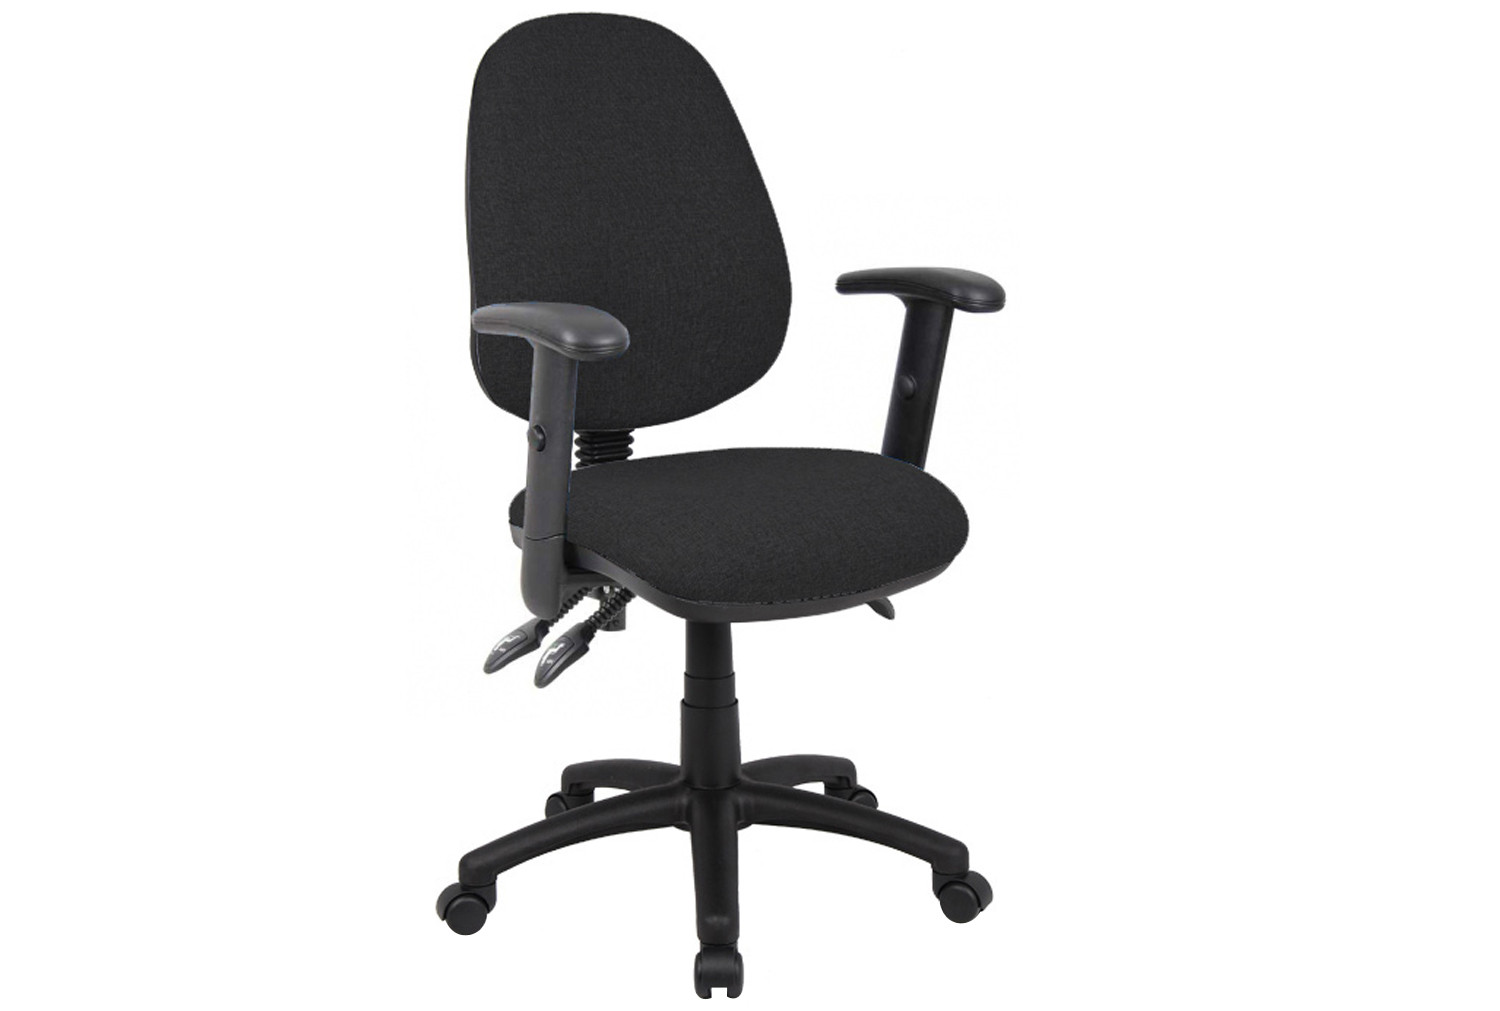 Full Lumbar 3 Lever Operator Chair With Adjustable Arms